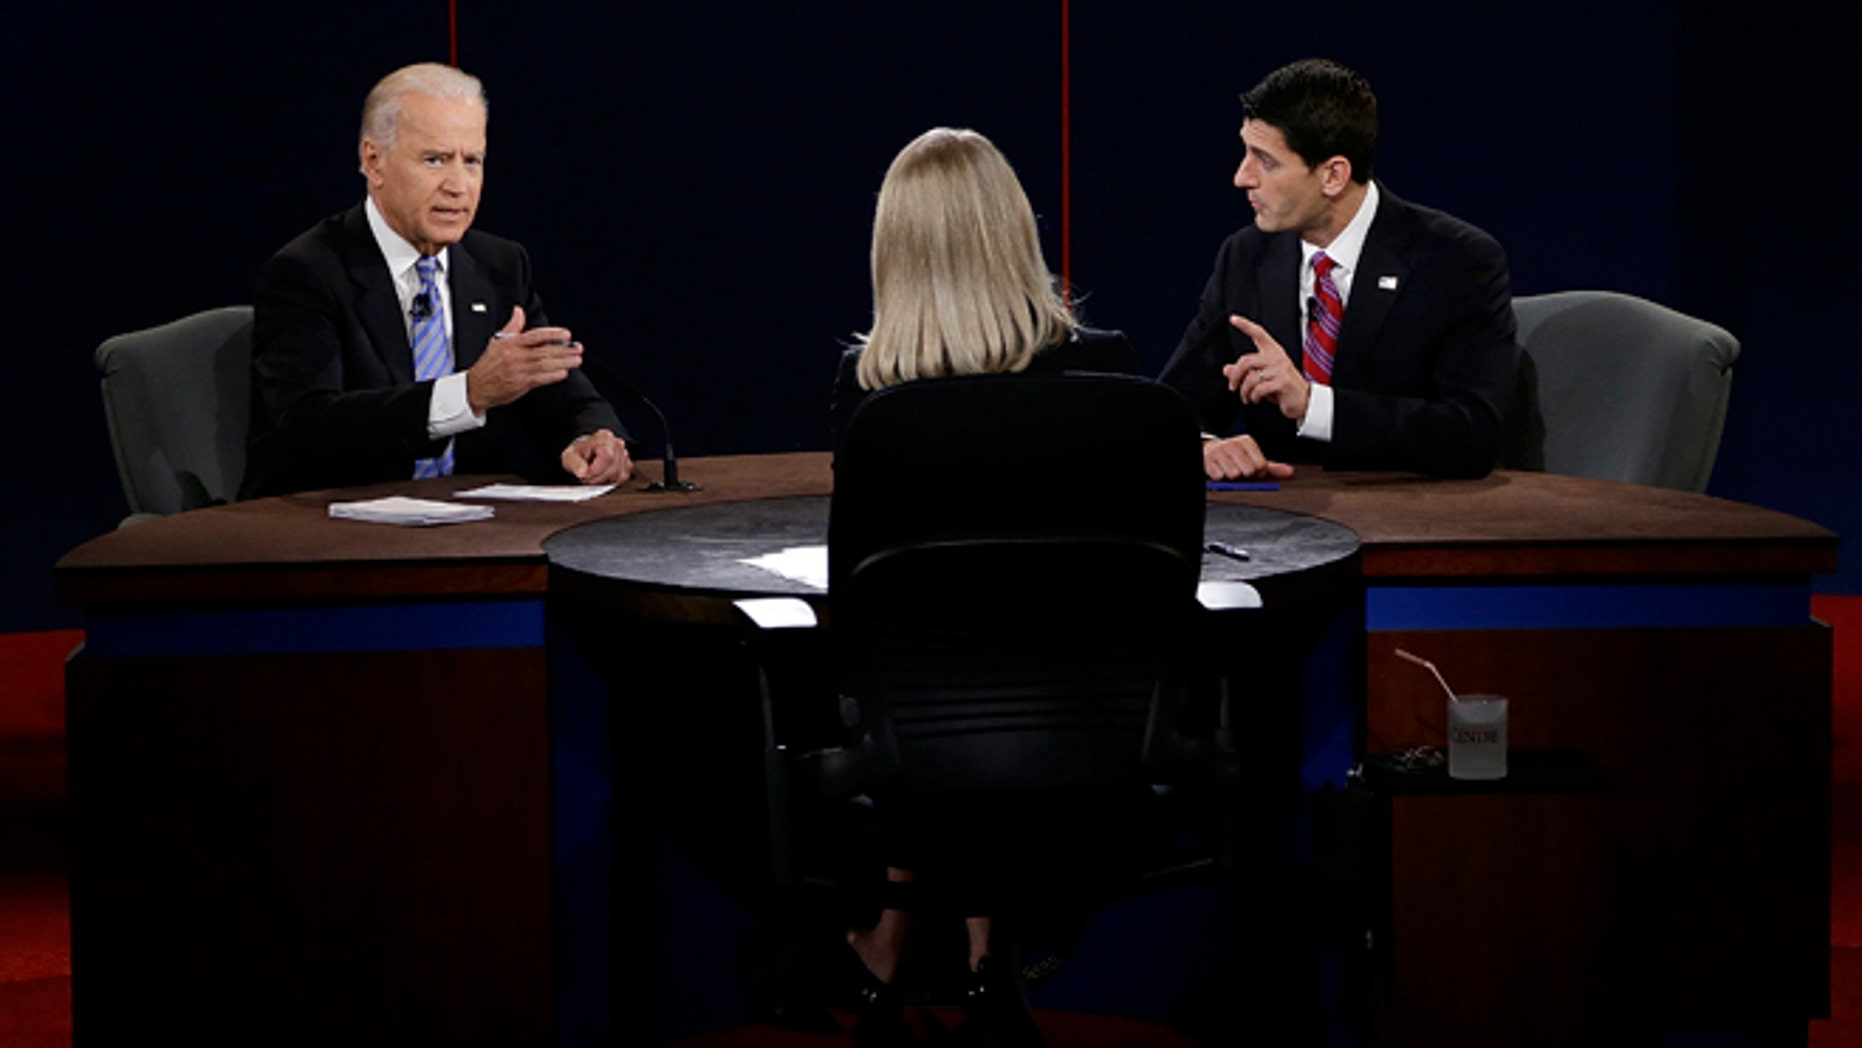 Oct. 11, 2012: Joe Biden and Paul Ryan participate in the vice presidential debate.